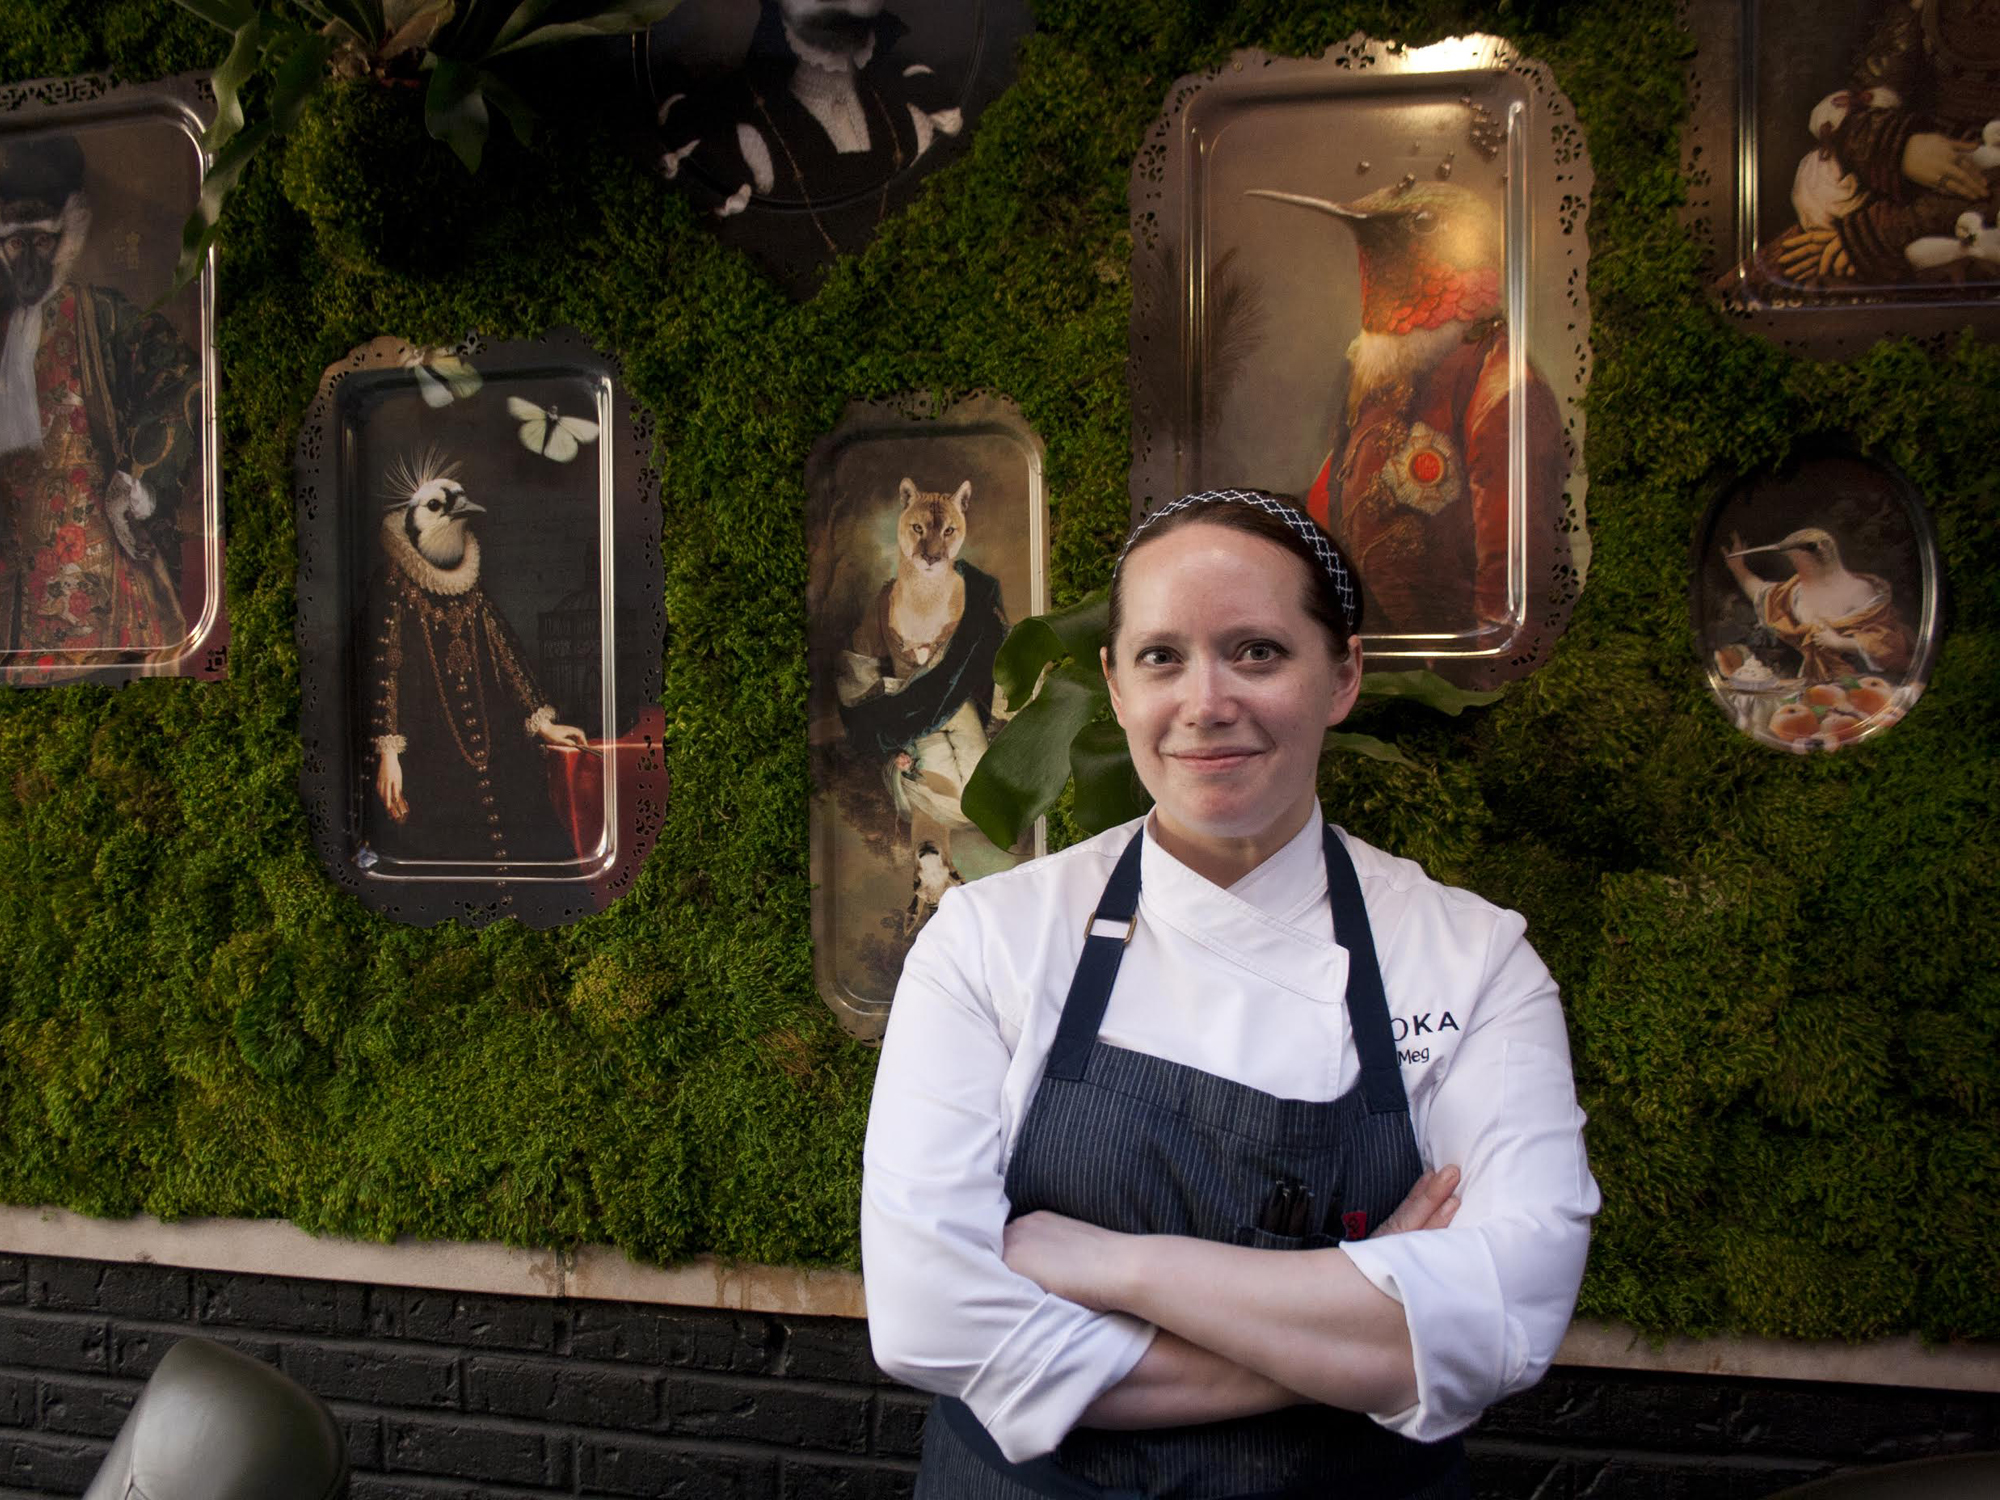 MAKING DESSERTS TO FIT: MEG GALUS OF BOKA AND SOMERSET